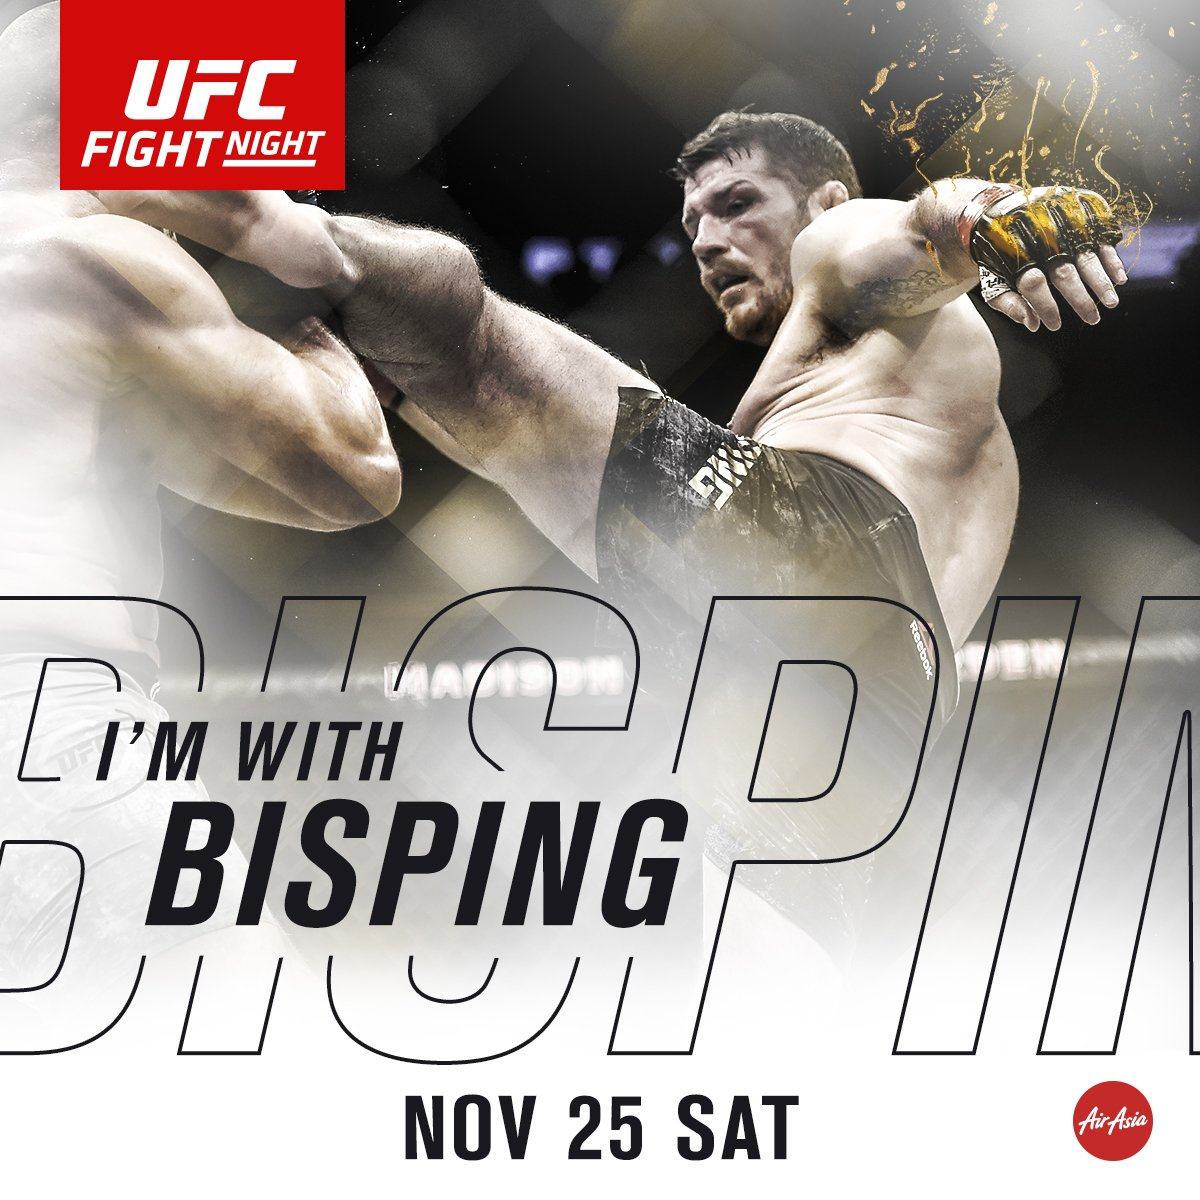 RT @ufc: RT if you're w/ @Bisping | Saturday, Nov. 25 at 7amET | LIVE on @UFCFightPass | #UFCShanghai https://t.co/hxygQMduVU